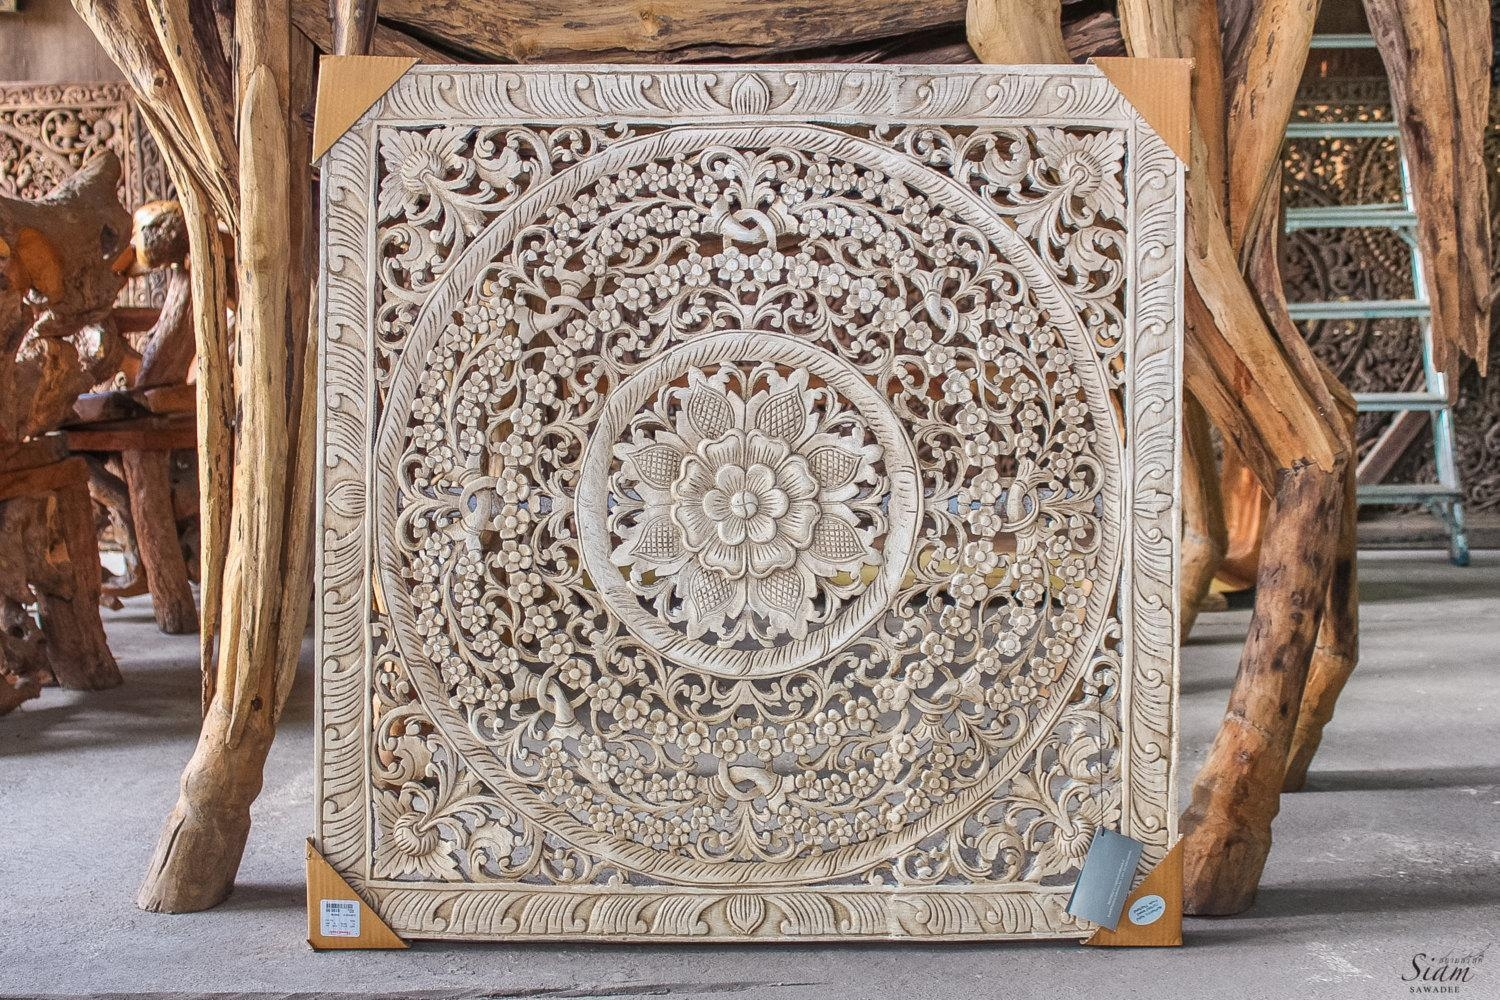 Carved Wood Wall Art New Picture Carved Wood Wall Decor – Home With Balinese Wall Art (View 5 of 20)